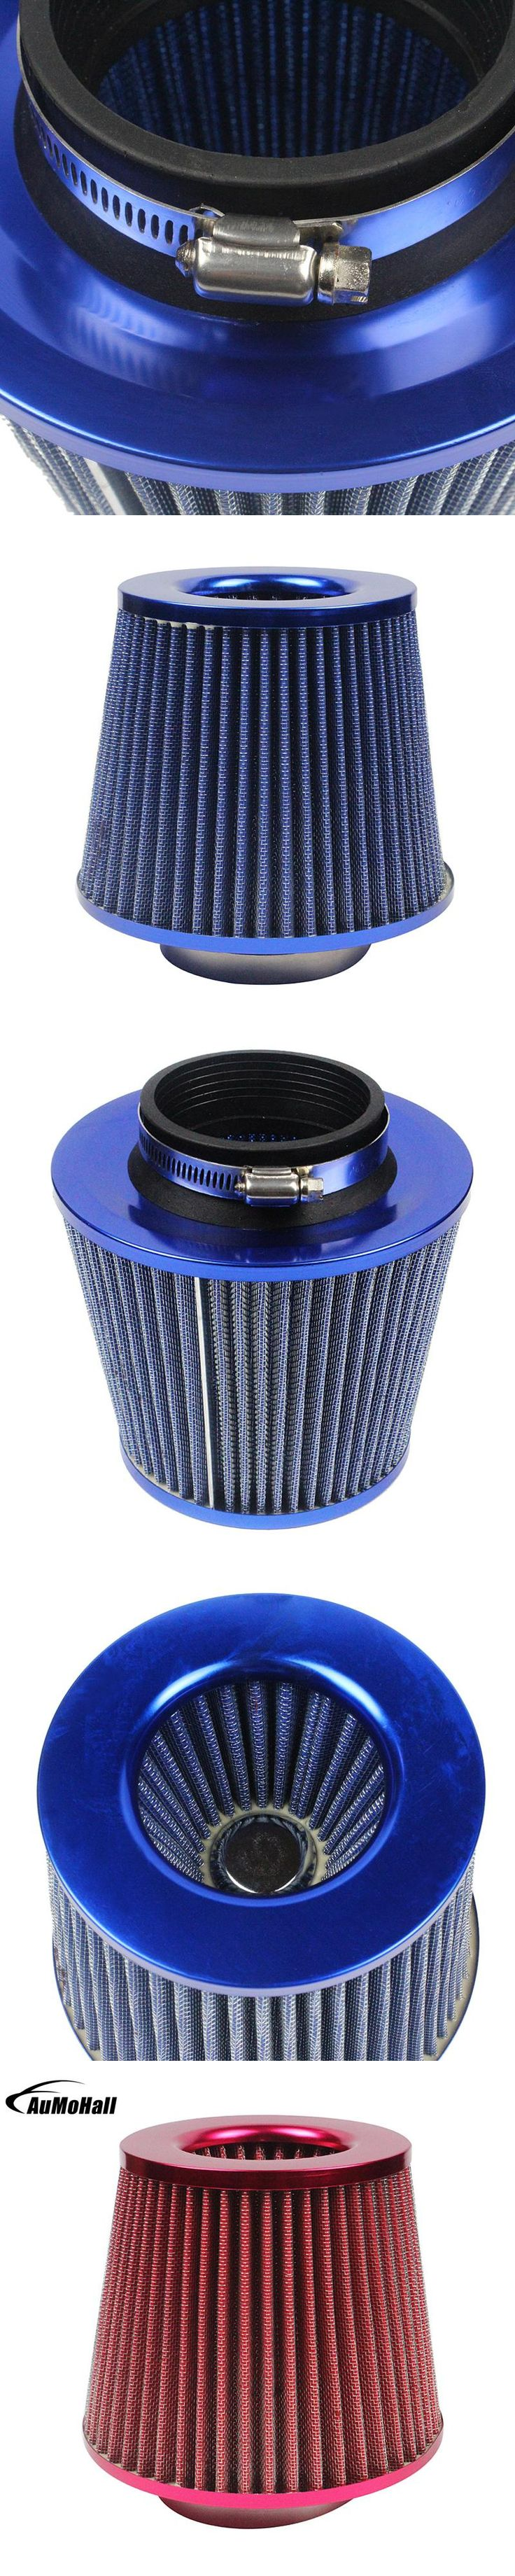 85mm Universal Power Intake Flow Reloaded Air Filter 75mm